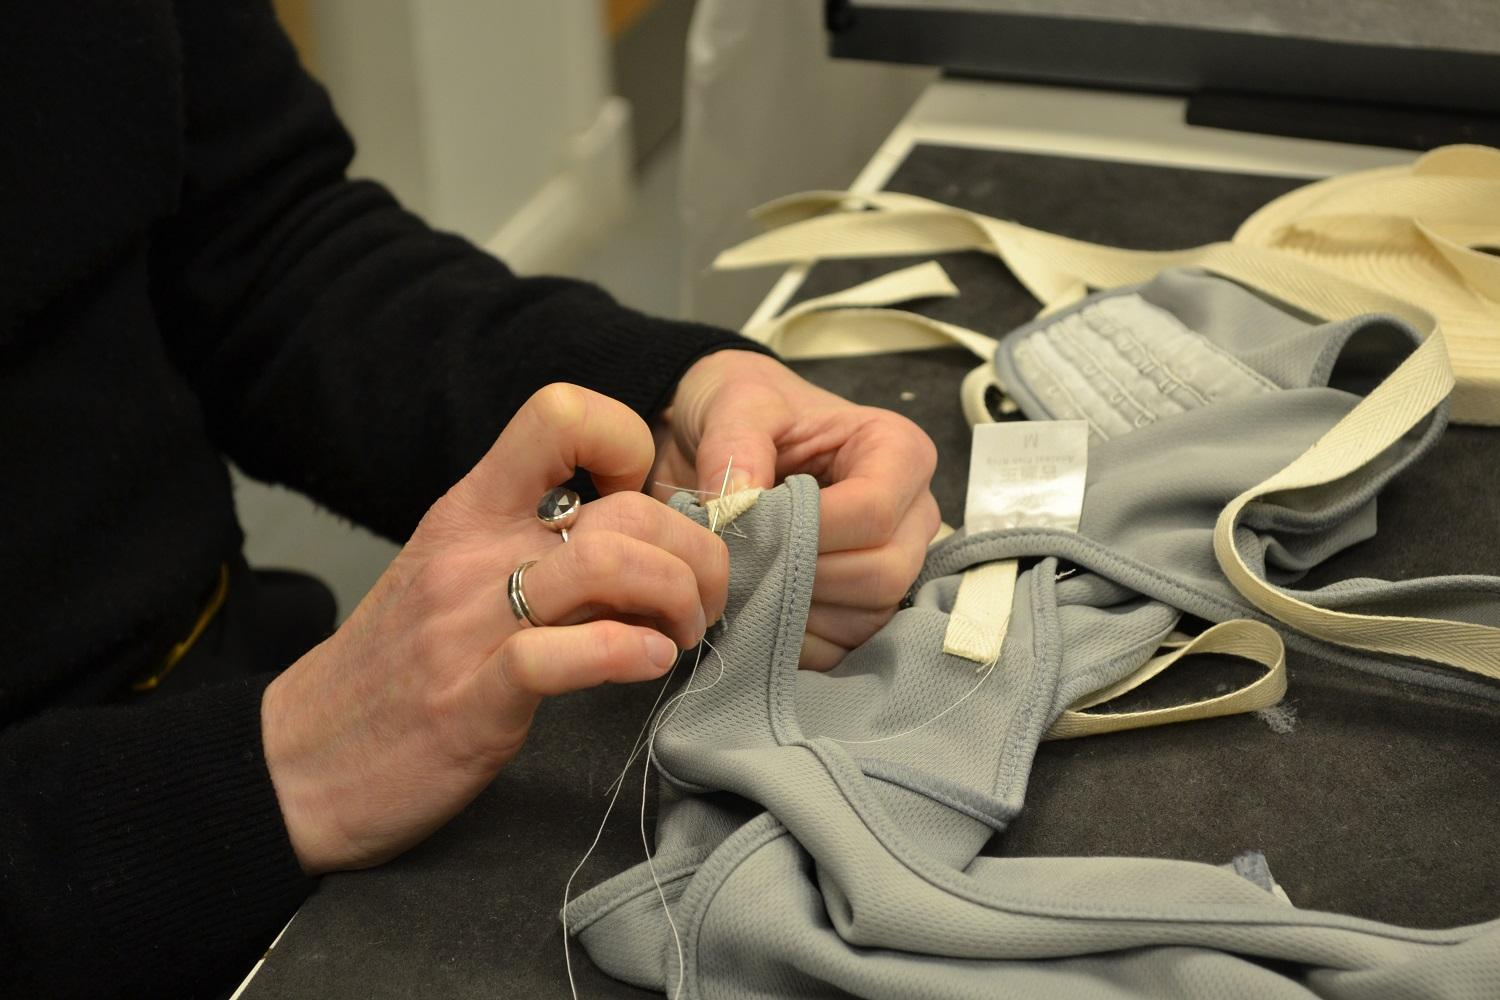 Curator stitching label onto textile object